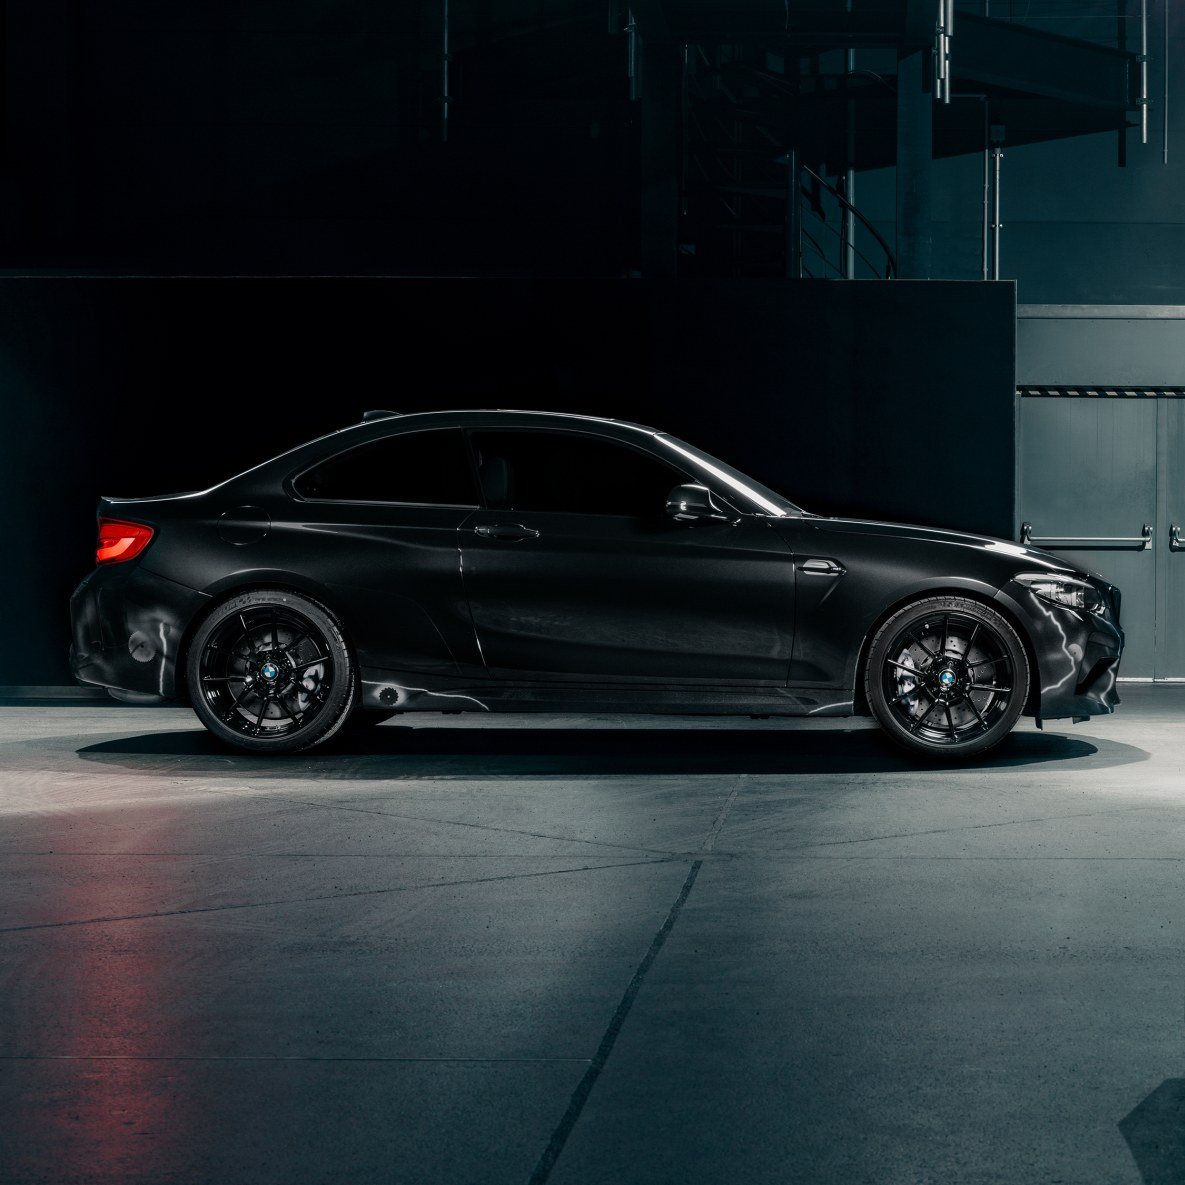 Side view of the BMW M2 Edition designed by FUTURA 2000